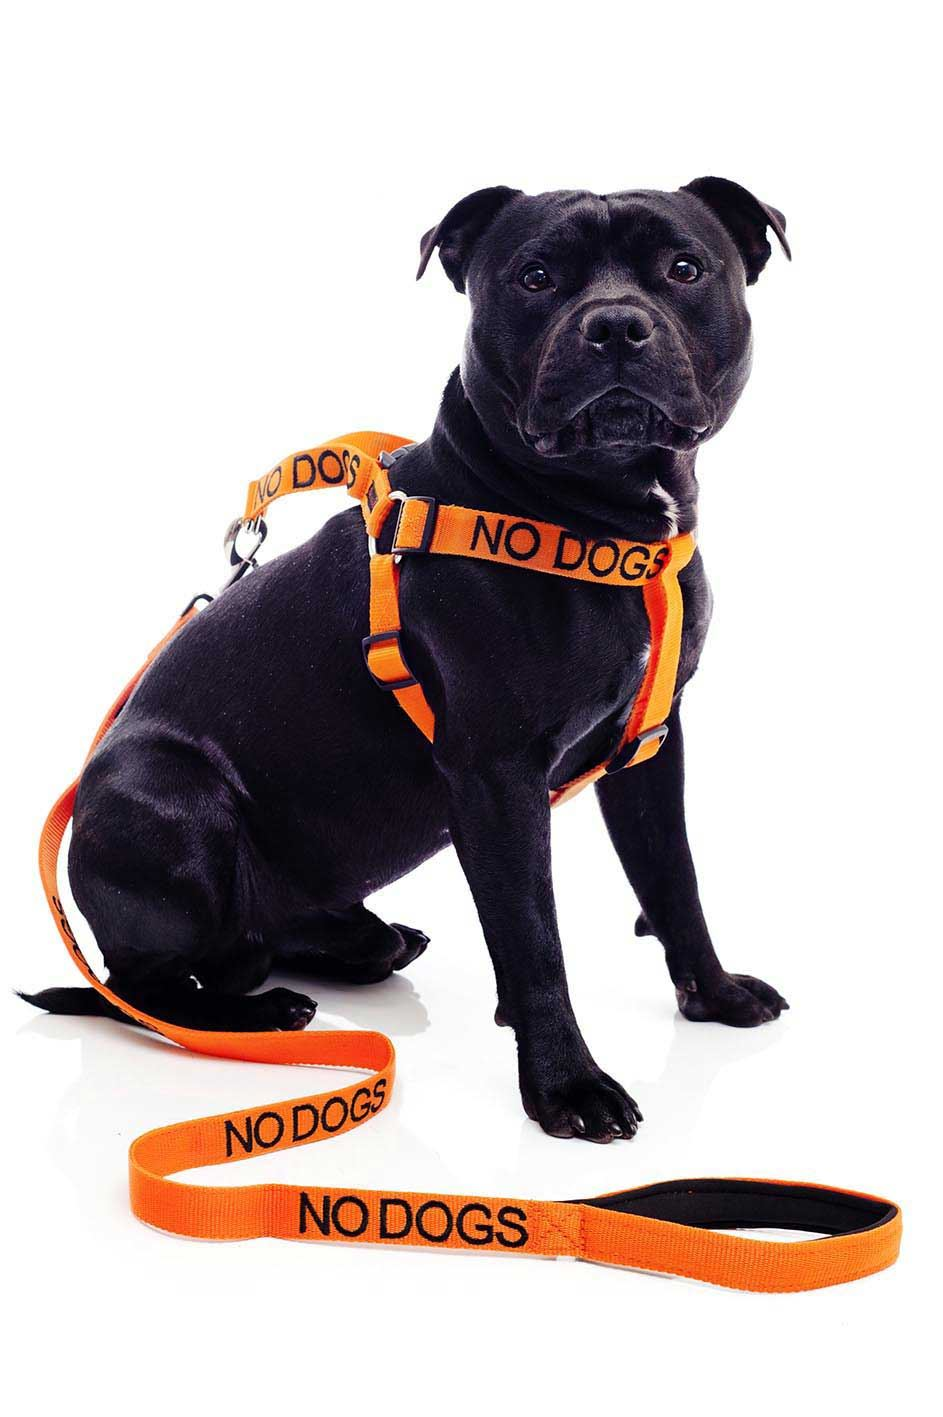 warning dog collars lead leash harness vest colour coded friendly deaf s m l ebay. Black Bedroom Furniture Sets. Home Design Ideas